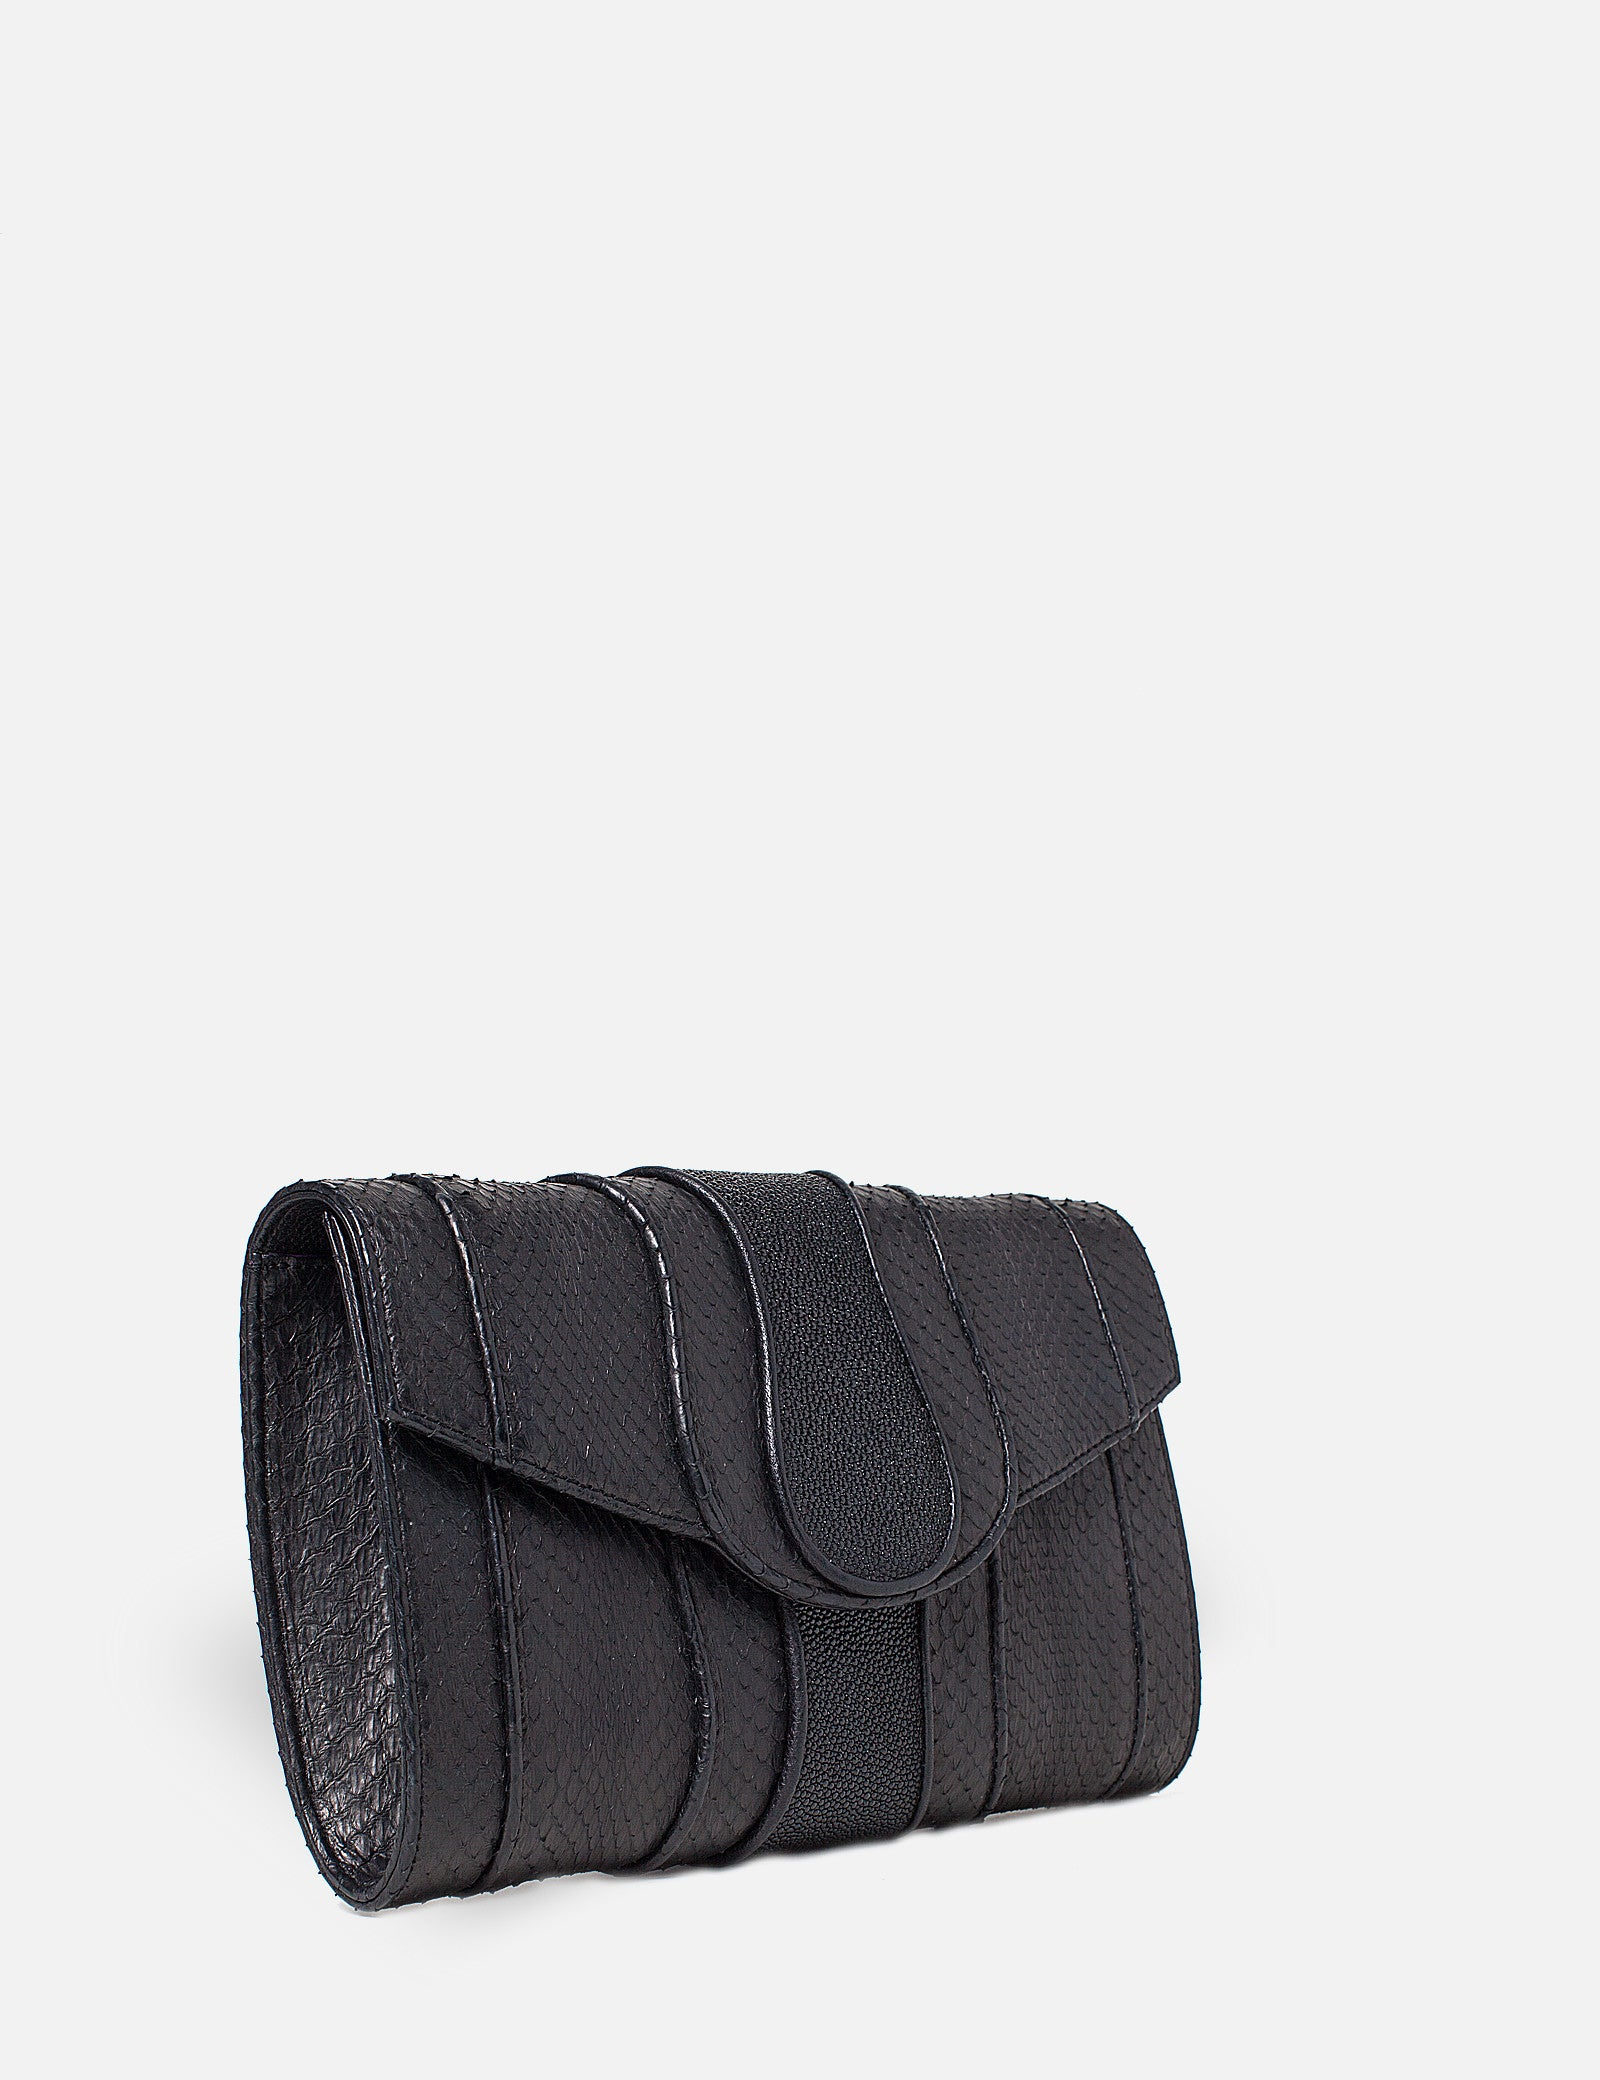 Khirma New York Unique Luxury Designer Exotic Watersnake Python Stingray Crocodile Skin Envelope Clutch Purse in Matte Black. Perfect for the day or night. Removable chain for the perfect evening clutch.